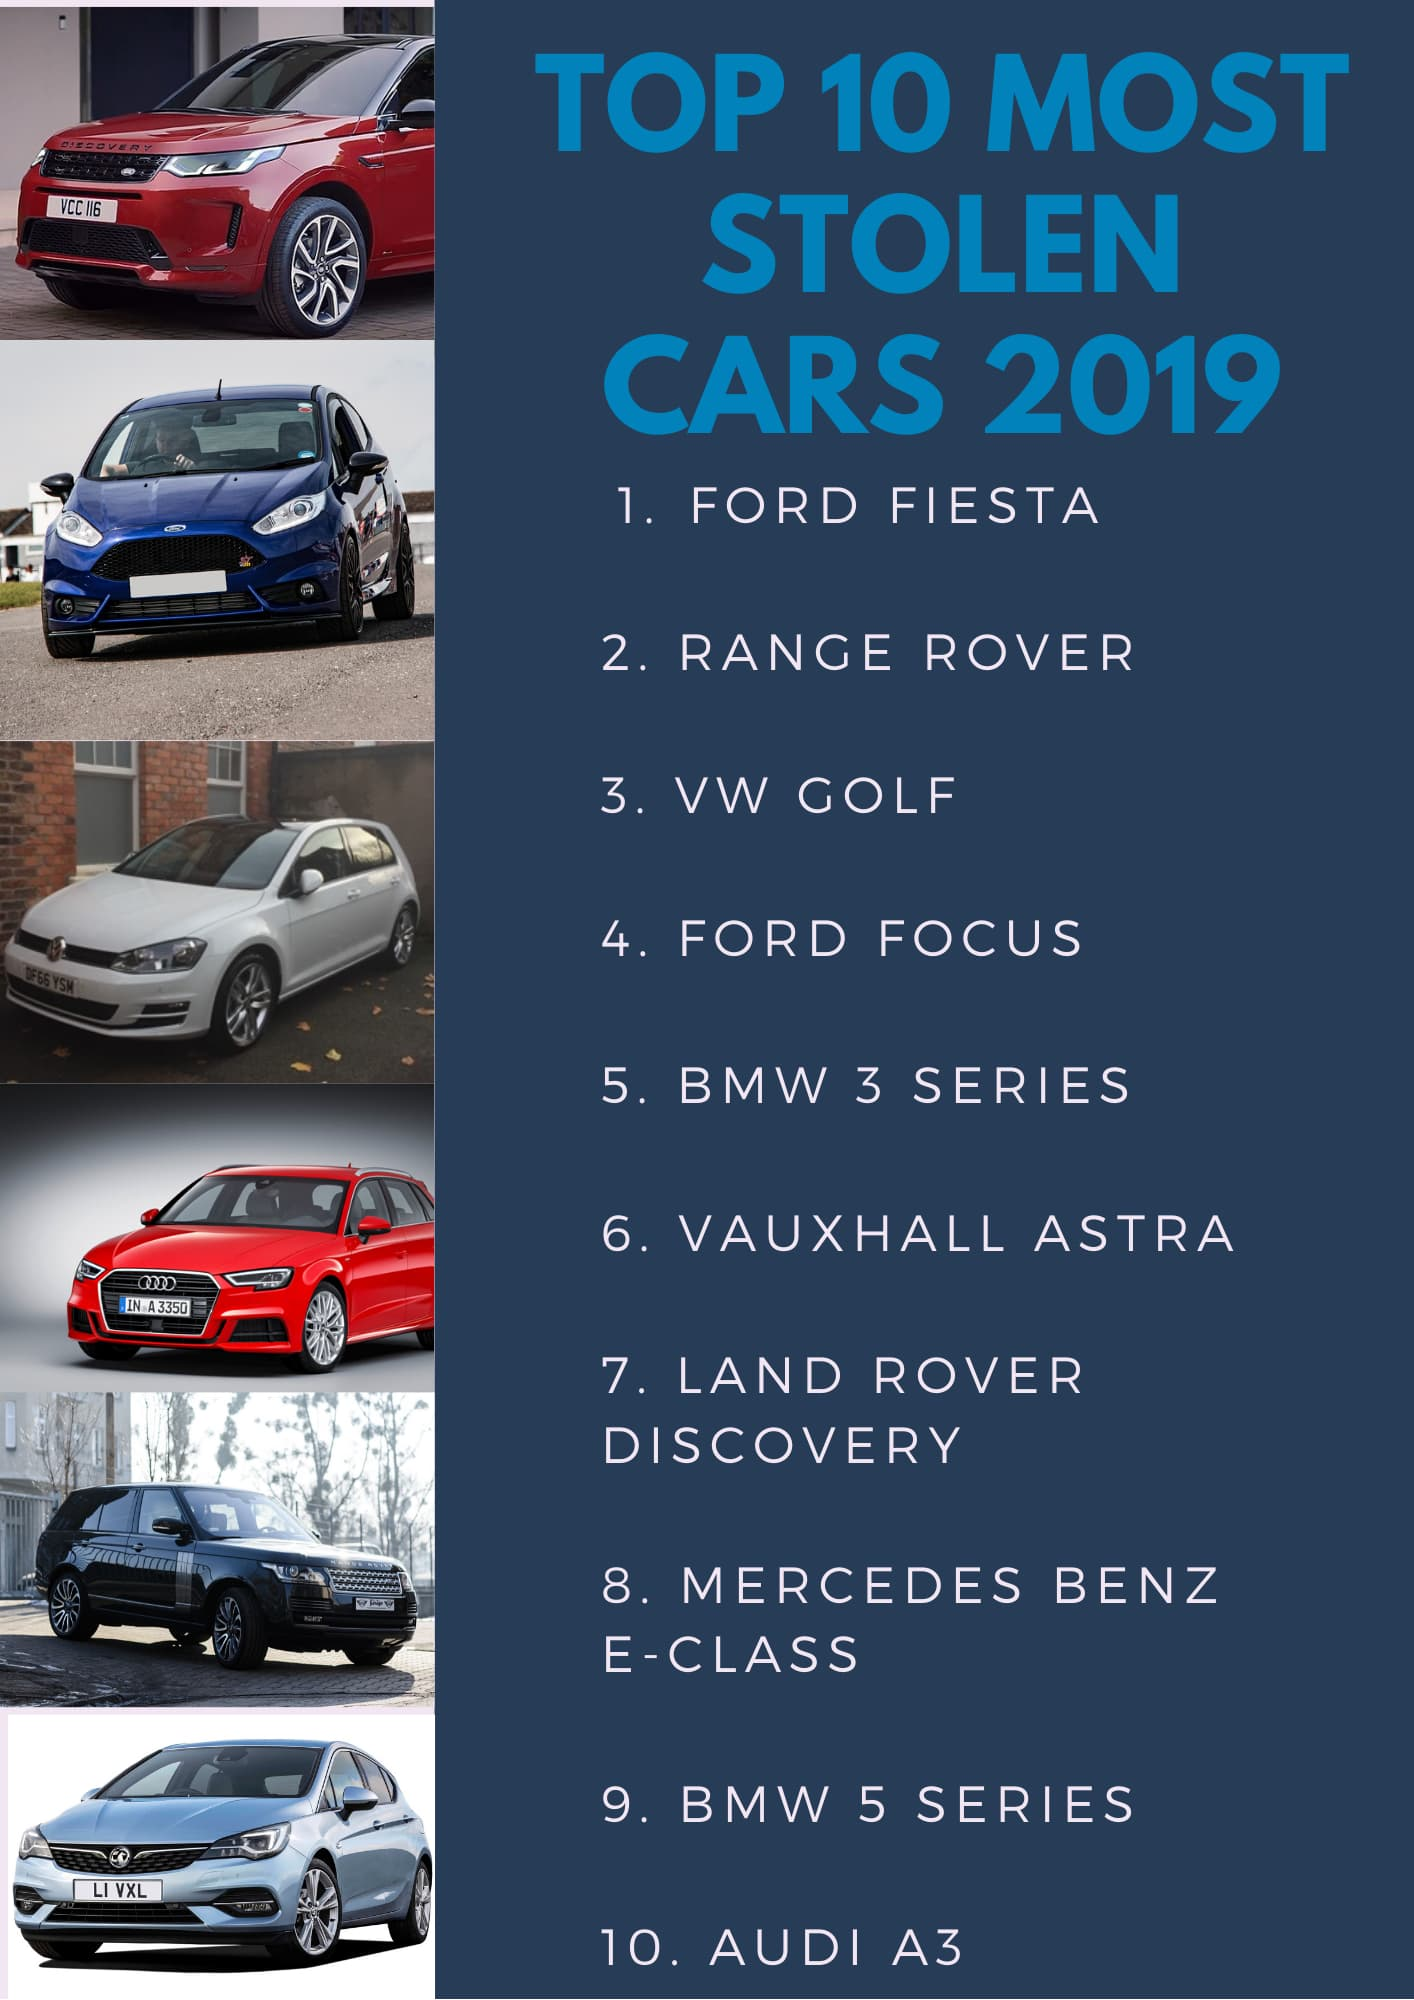 Top 10 most stolen cars UK 2019